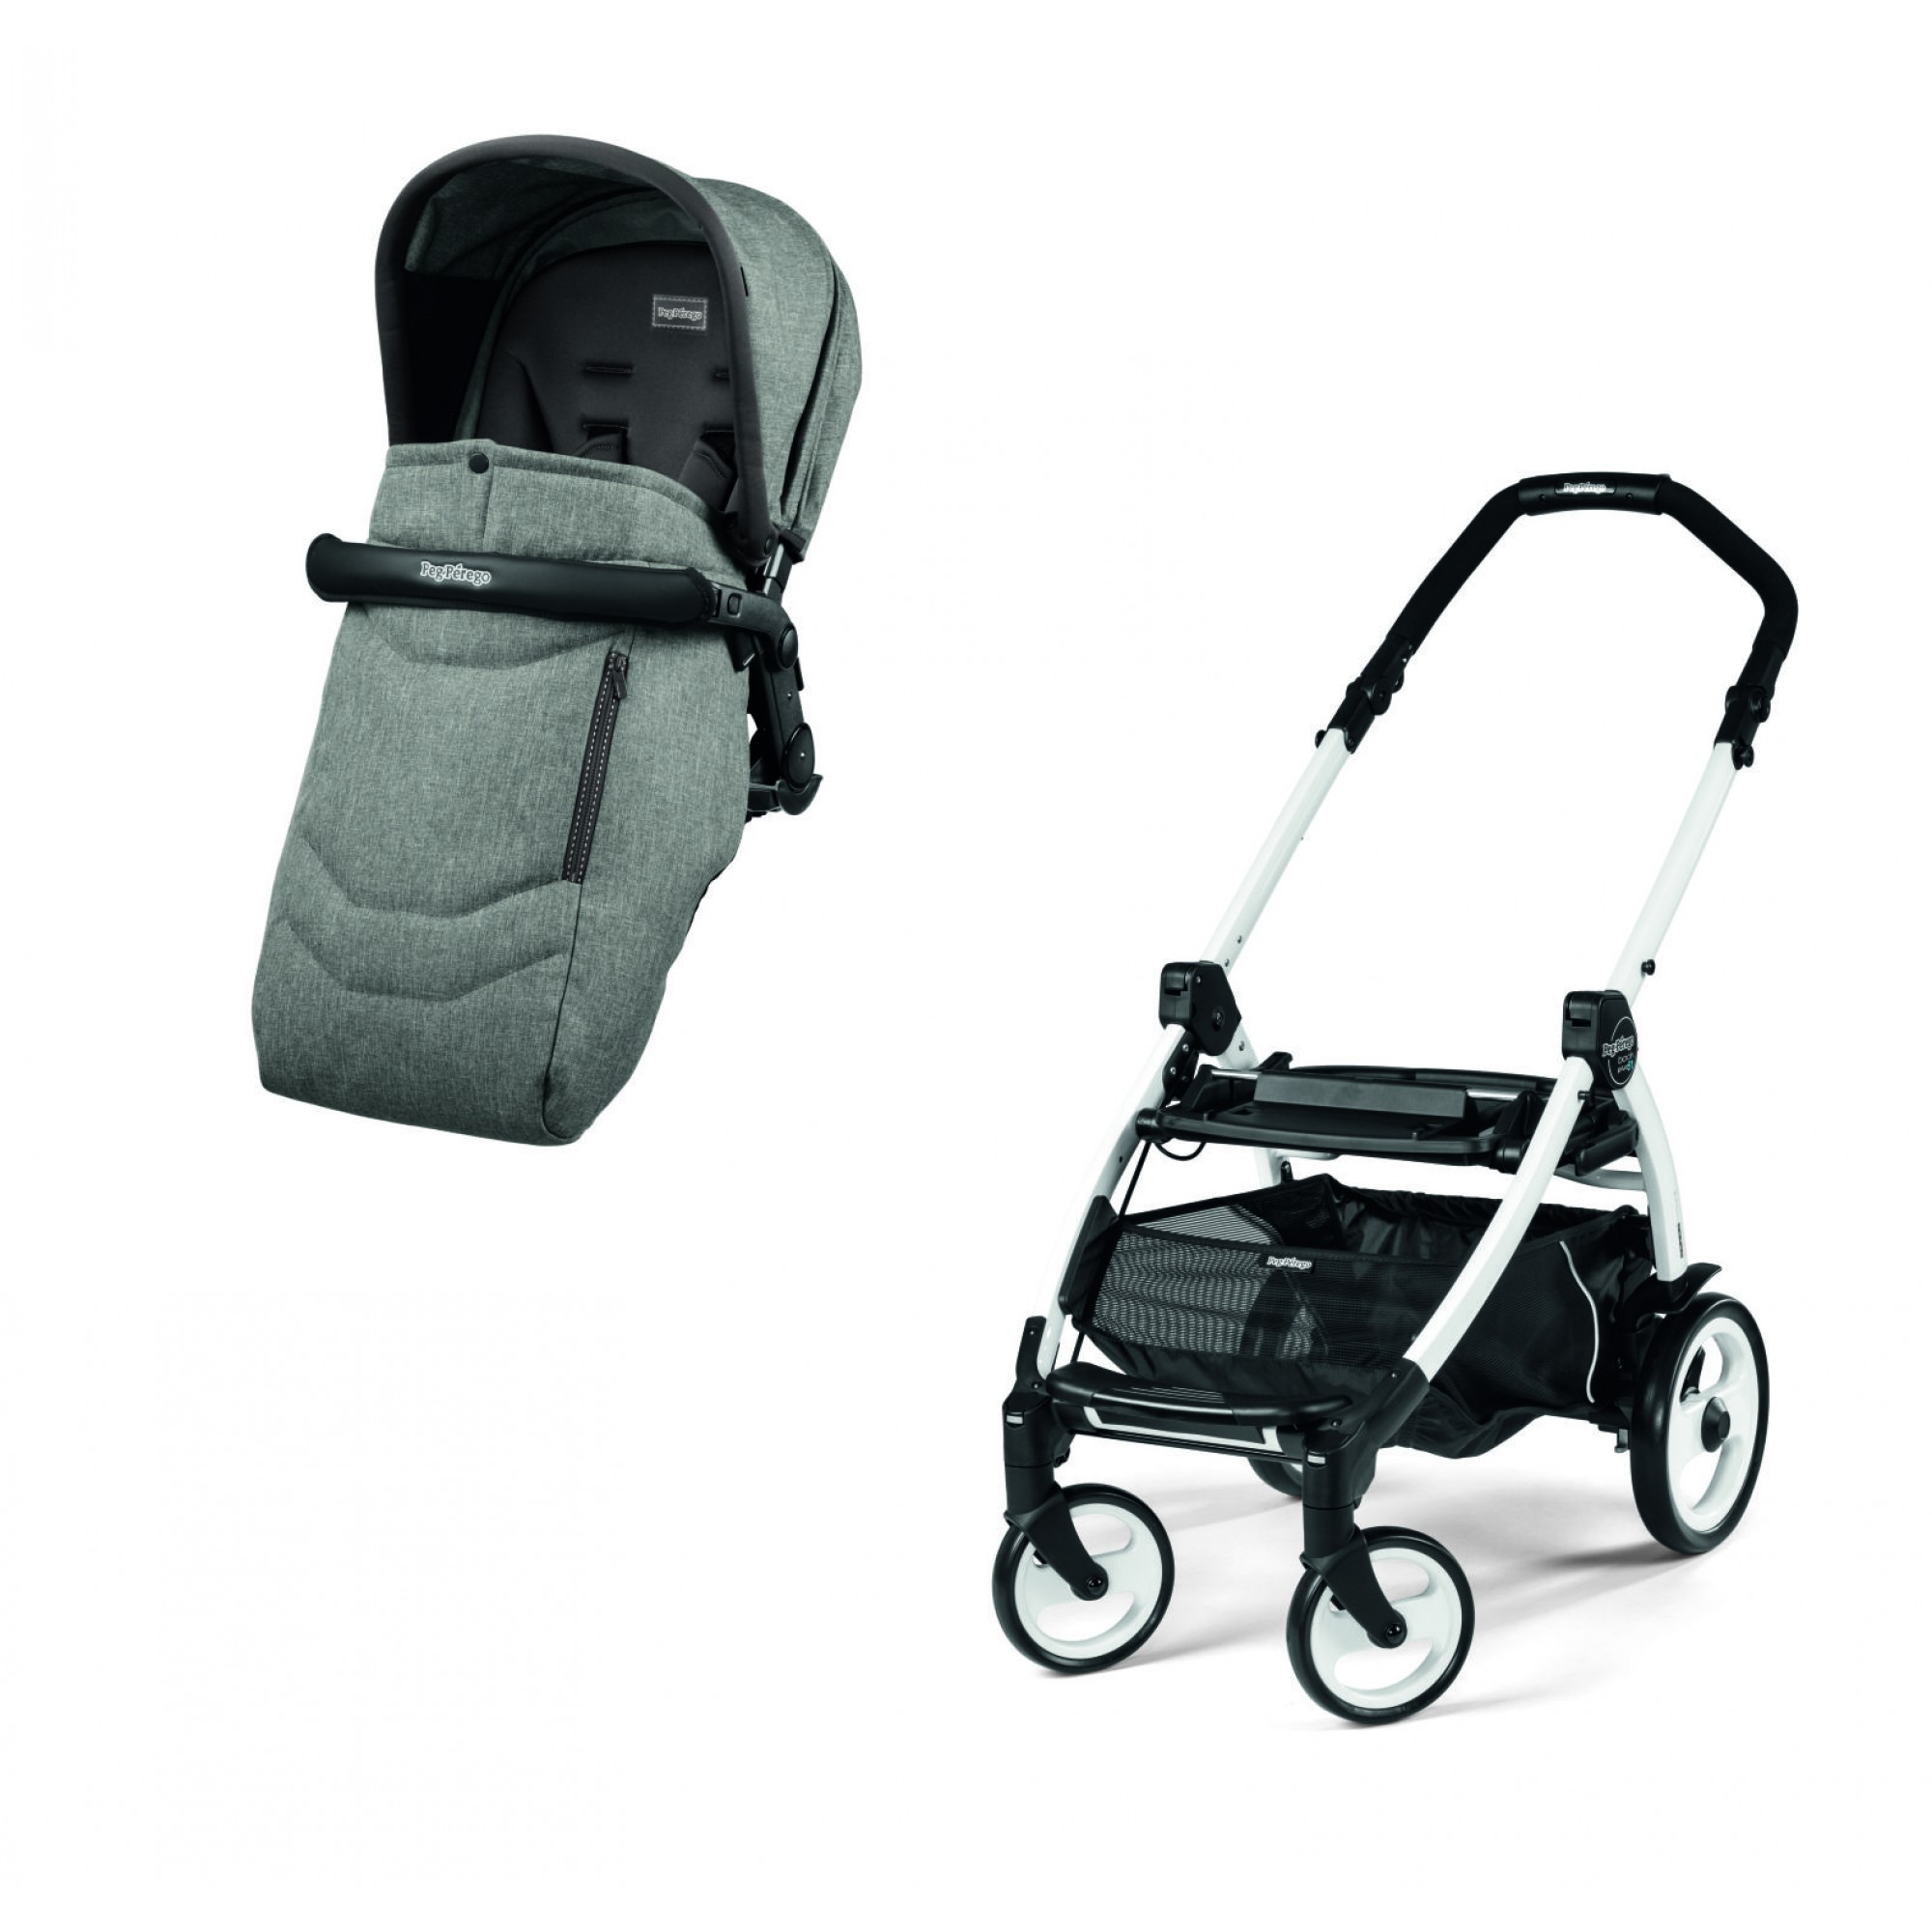 Carucior Peg Perego 3 in 1 Book Plus 51 S Alb Atmosphere - produs resigilat